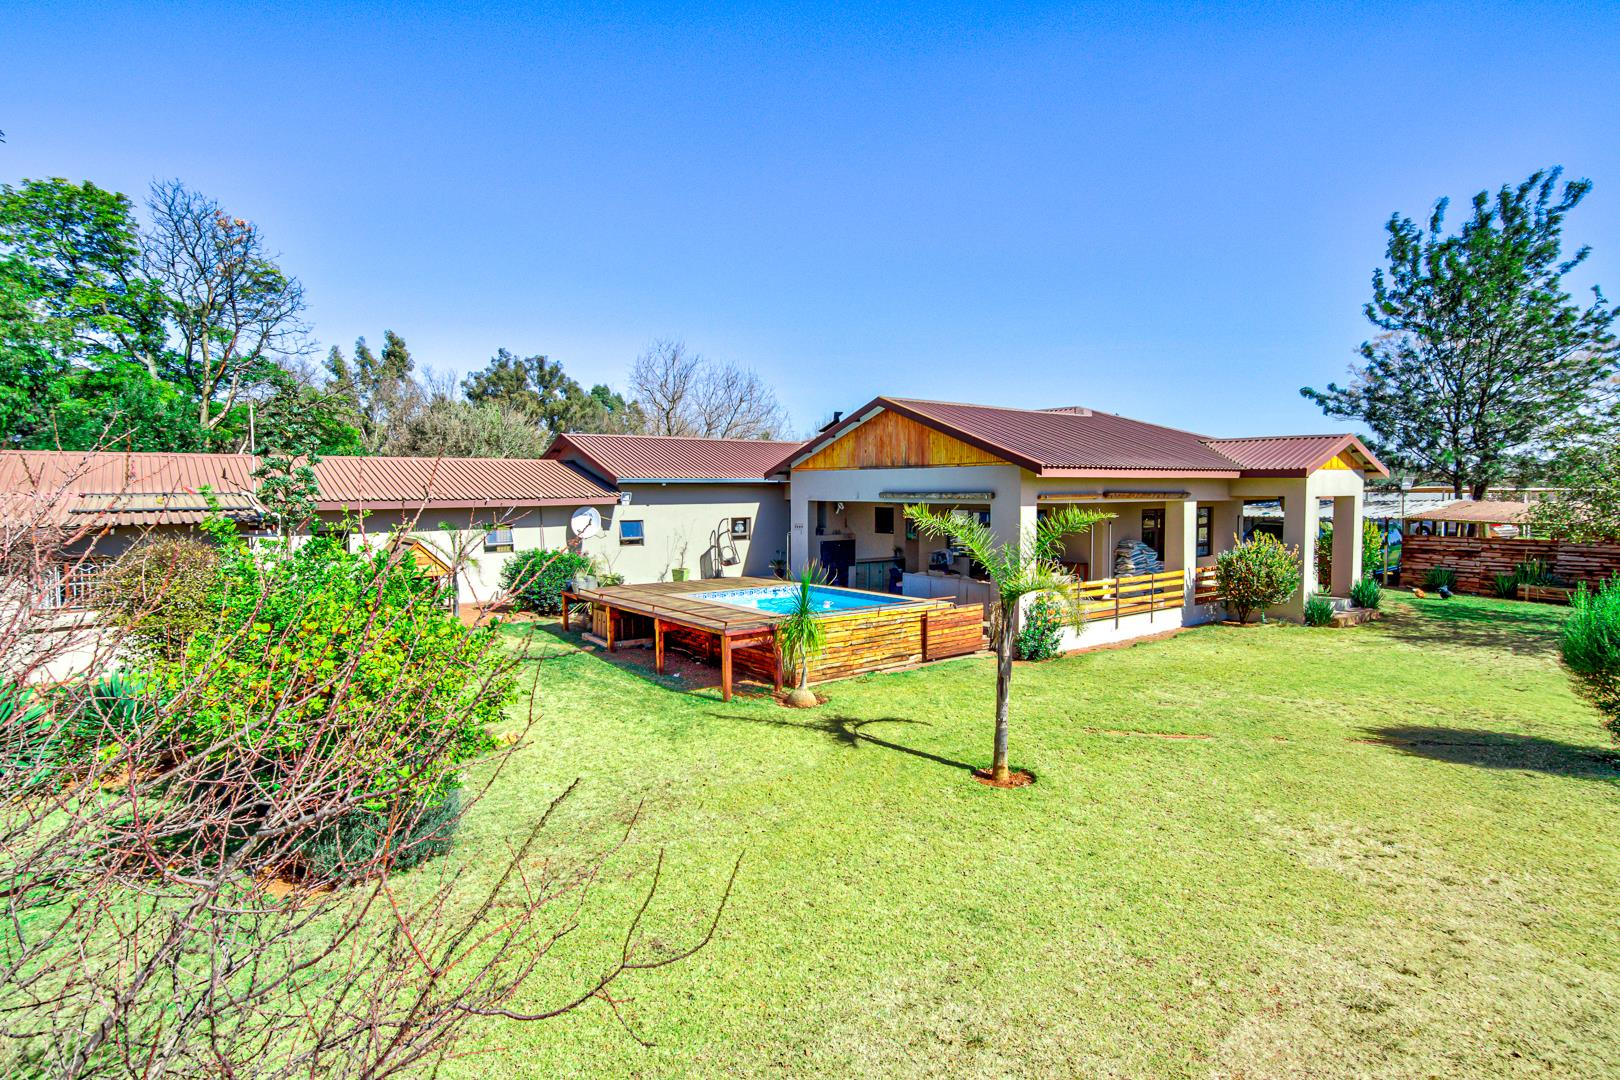 5 Bedroom House For Sale in Bredell